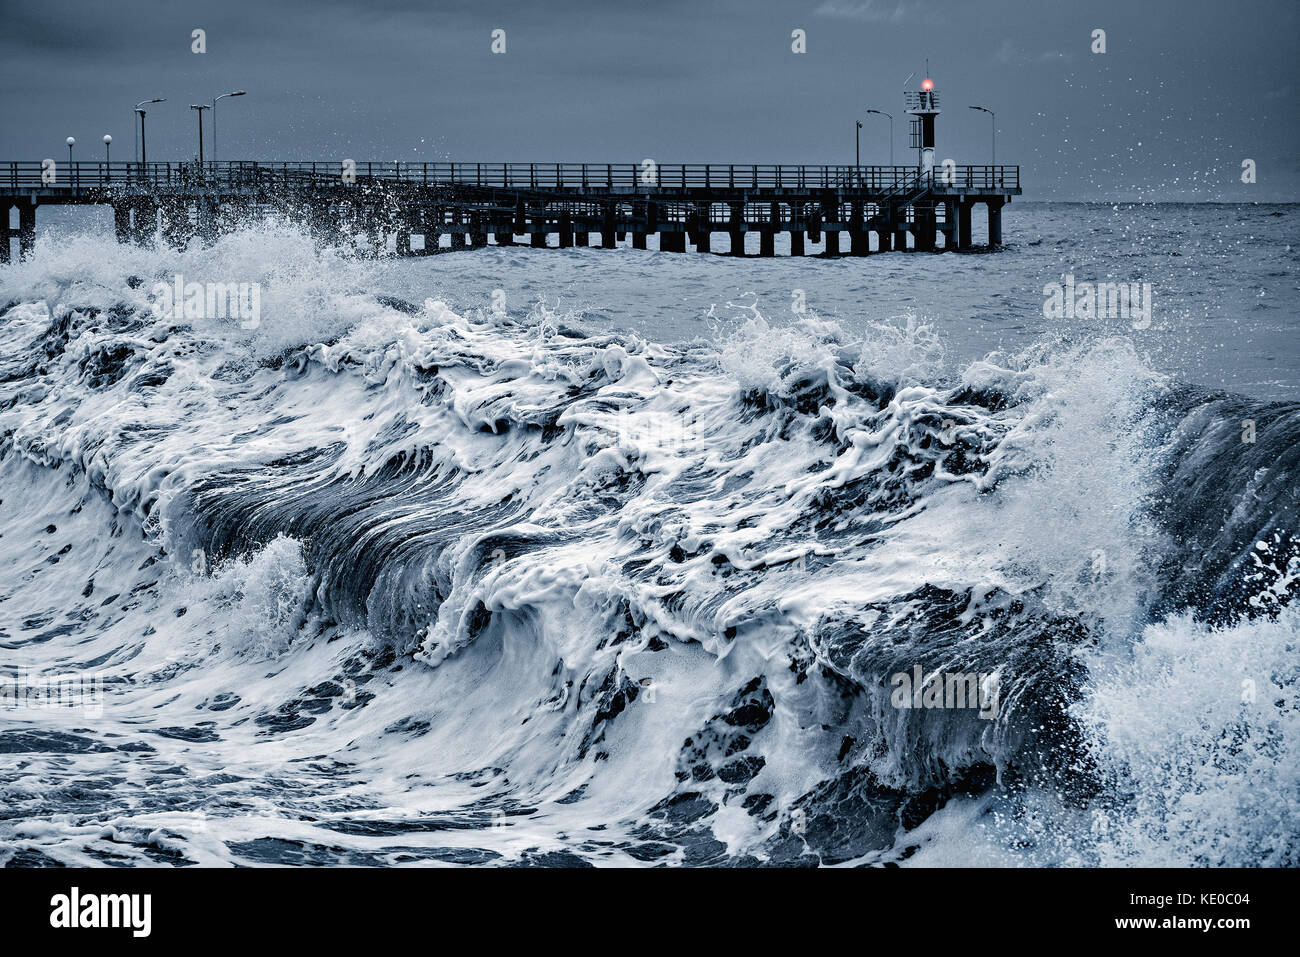 View of the pier at stormy evening time. - Stock Image